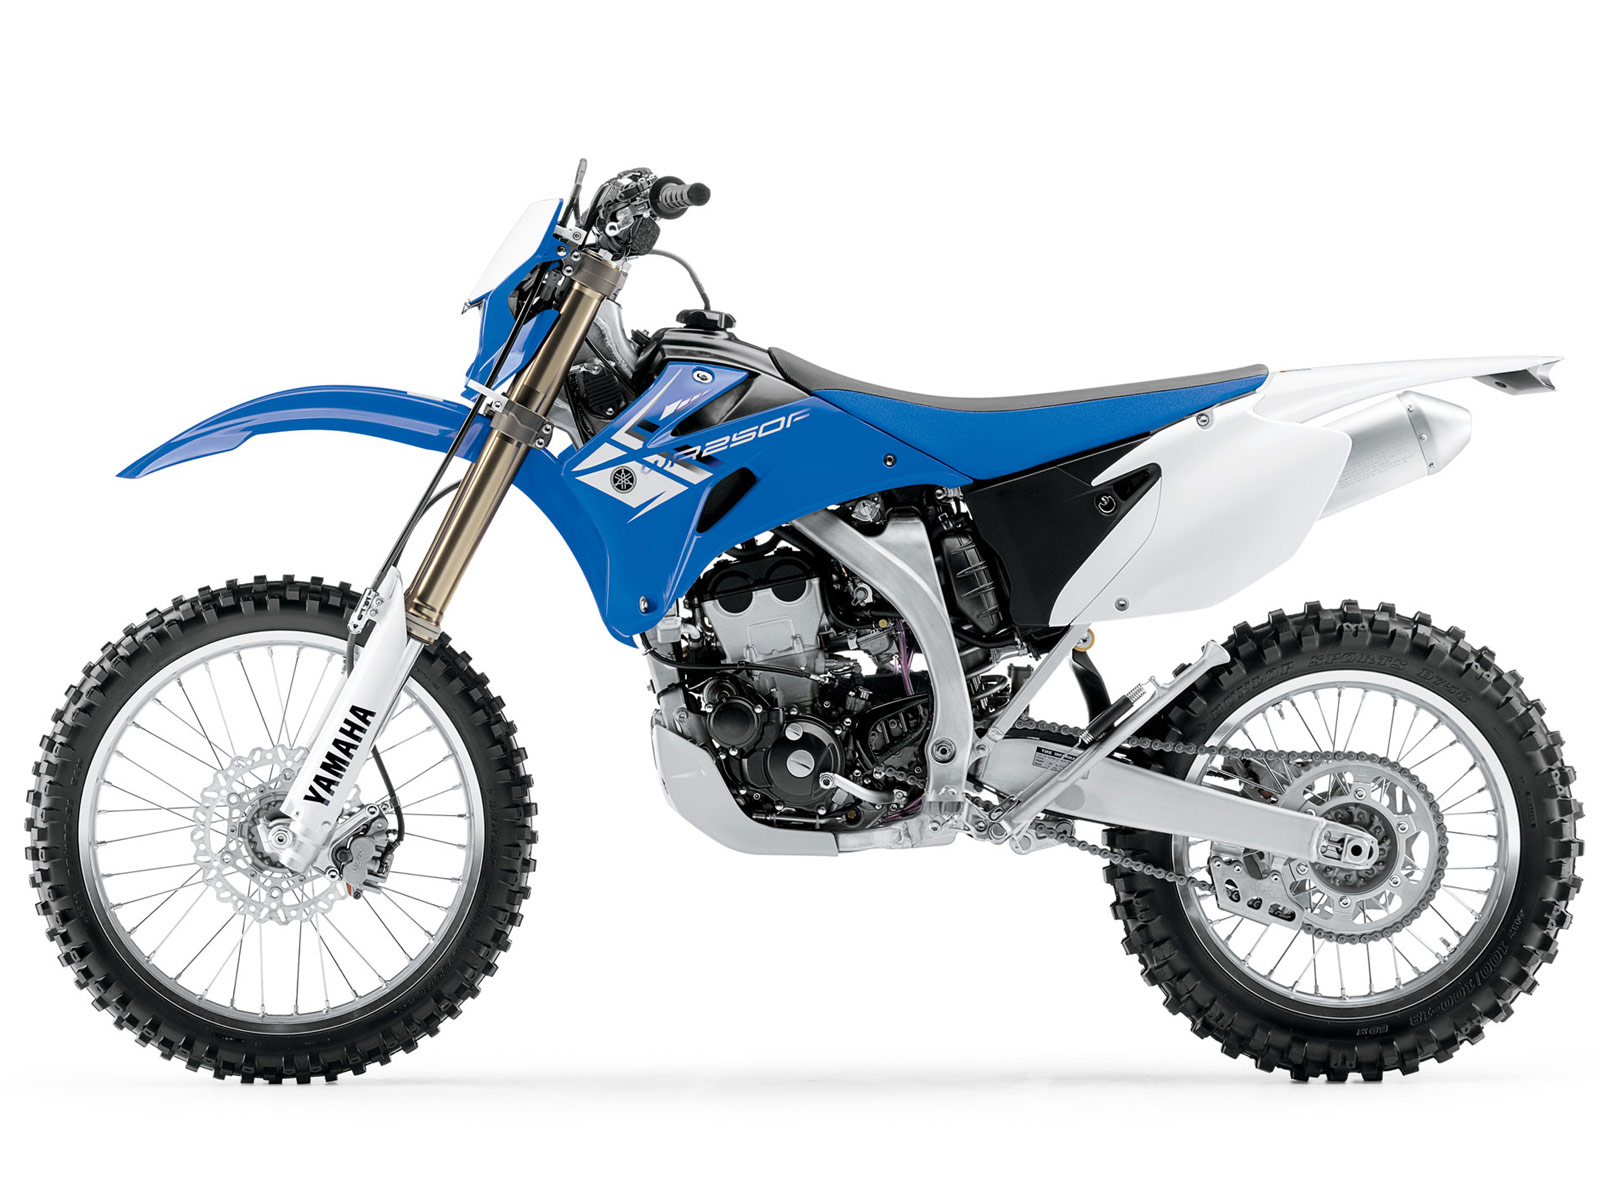 2019 Yamaha WR250F Guide • Total Motorcycle